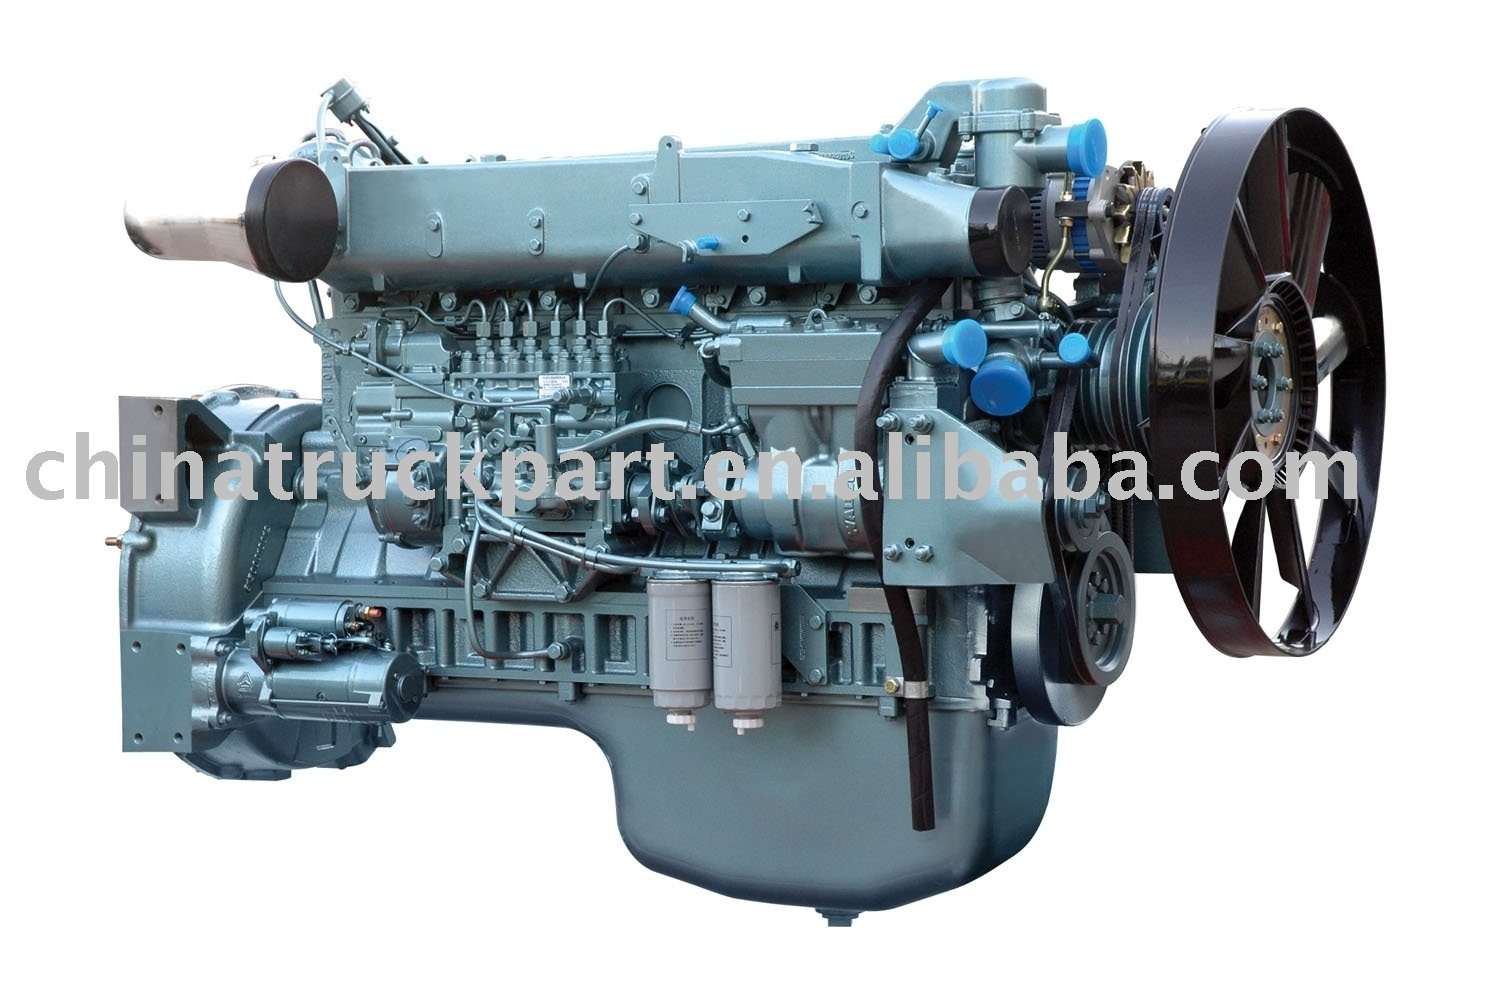 Sinotruk truck engine